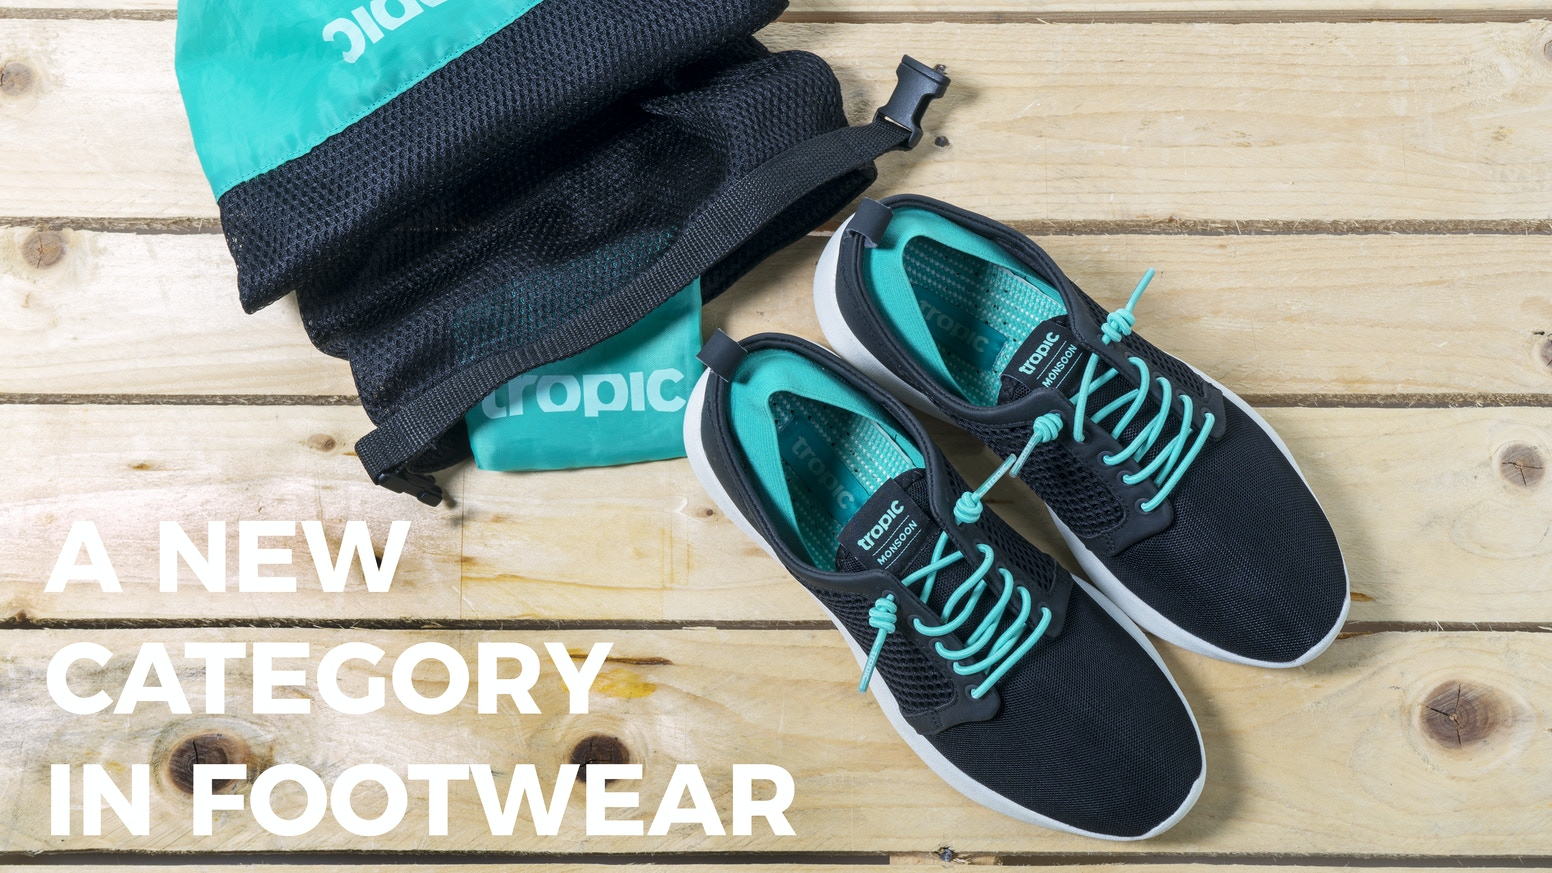 Tropic - The Ultimate Travel Shoe is the top crowdfunding project launched today. Tropic - The Ultimate Travel Shoe raised over $2140416 from 26284 backers. Other top projects include KableCARD | Multi-functional Cable Essentials For Your Phone, Most Crowdfunded Cycling Power Meter Campaign Ever, Xenxo S-Ring - The World's Smartest Smart Wearable...